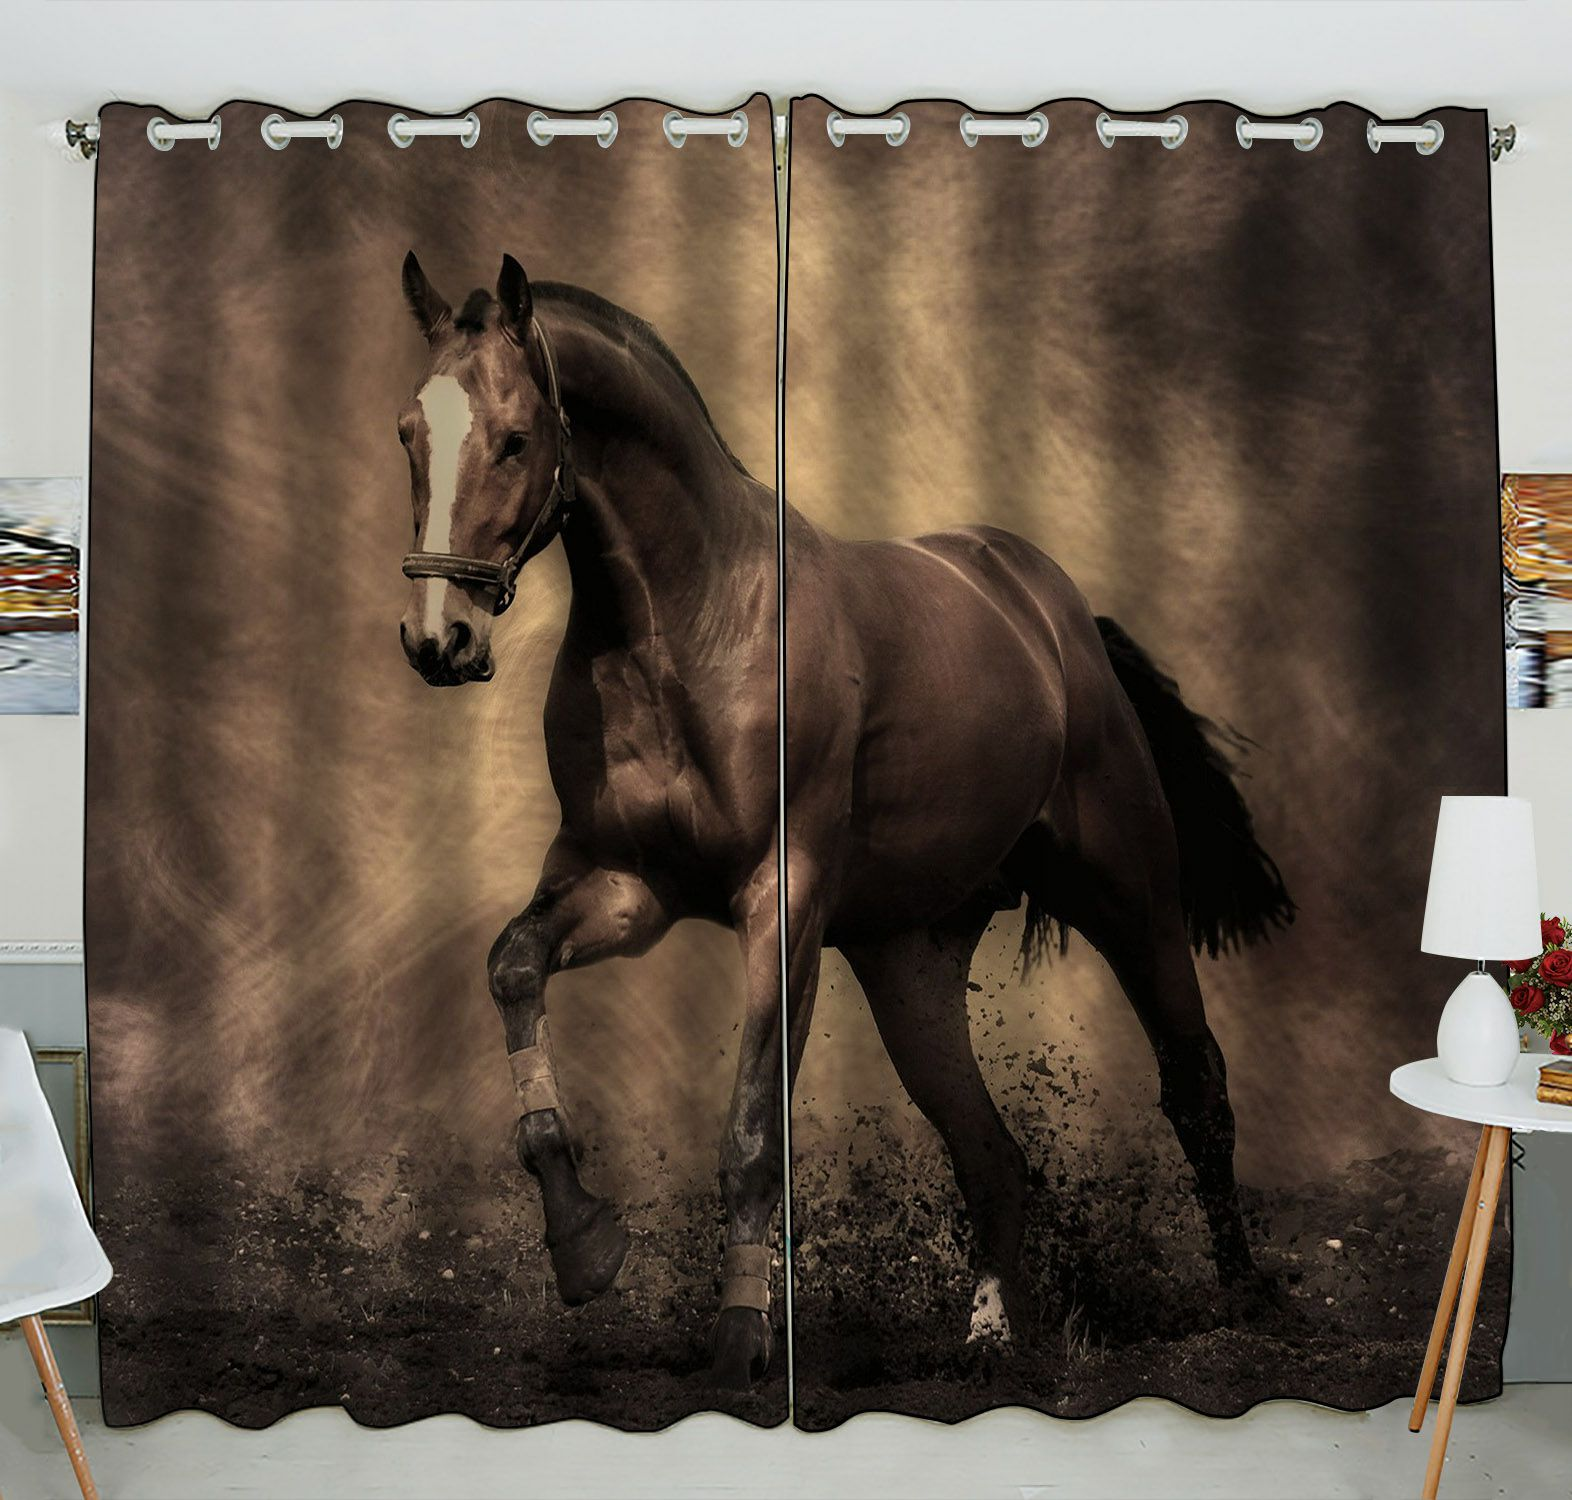 ZKGK Running Horse Window Curtain Drapery/Panels/Treatment For Living Room Bedroom Kids Rooms 52x84 inches Two Panel